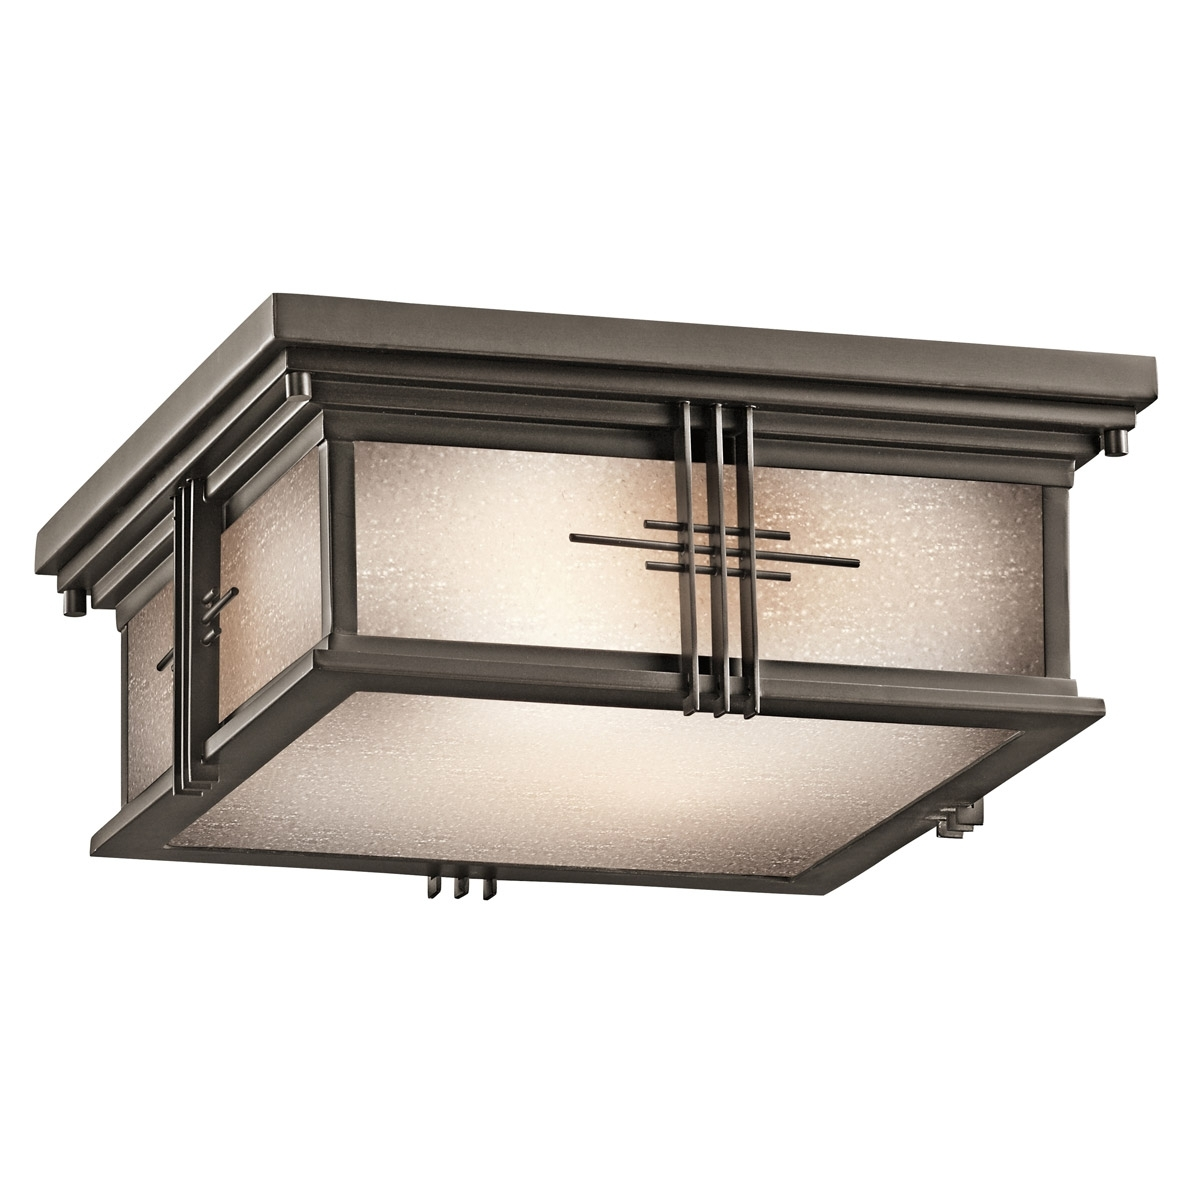 Inspiration about 49164Oz Portman Square Outdoor Flush Mount Ceiling Fixture Pertaining To Craftsman Outdoor Ceiling Lights (#3 of 15)